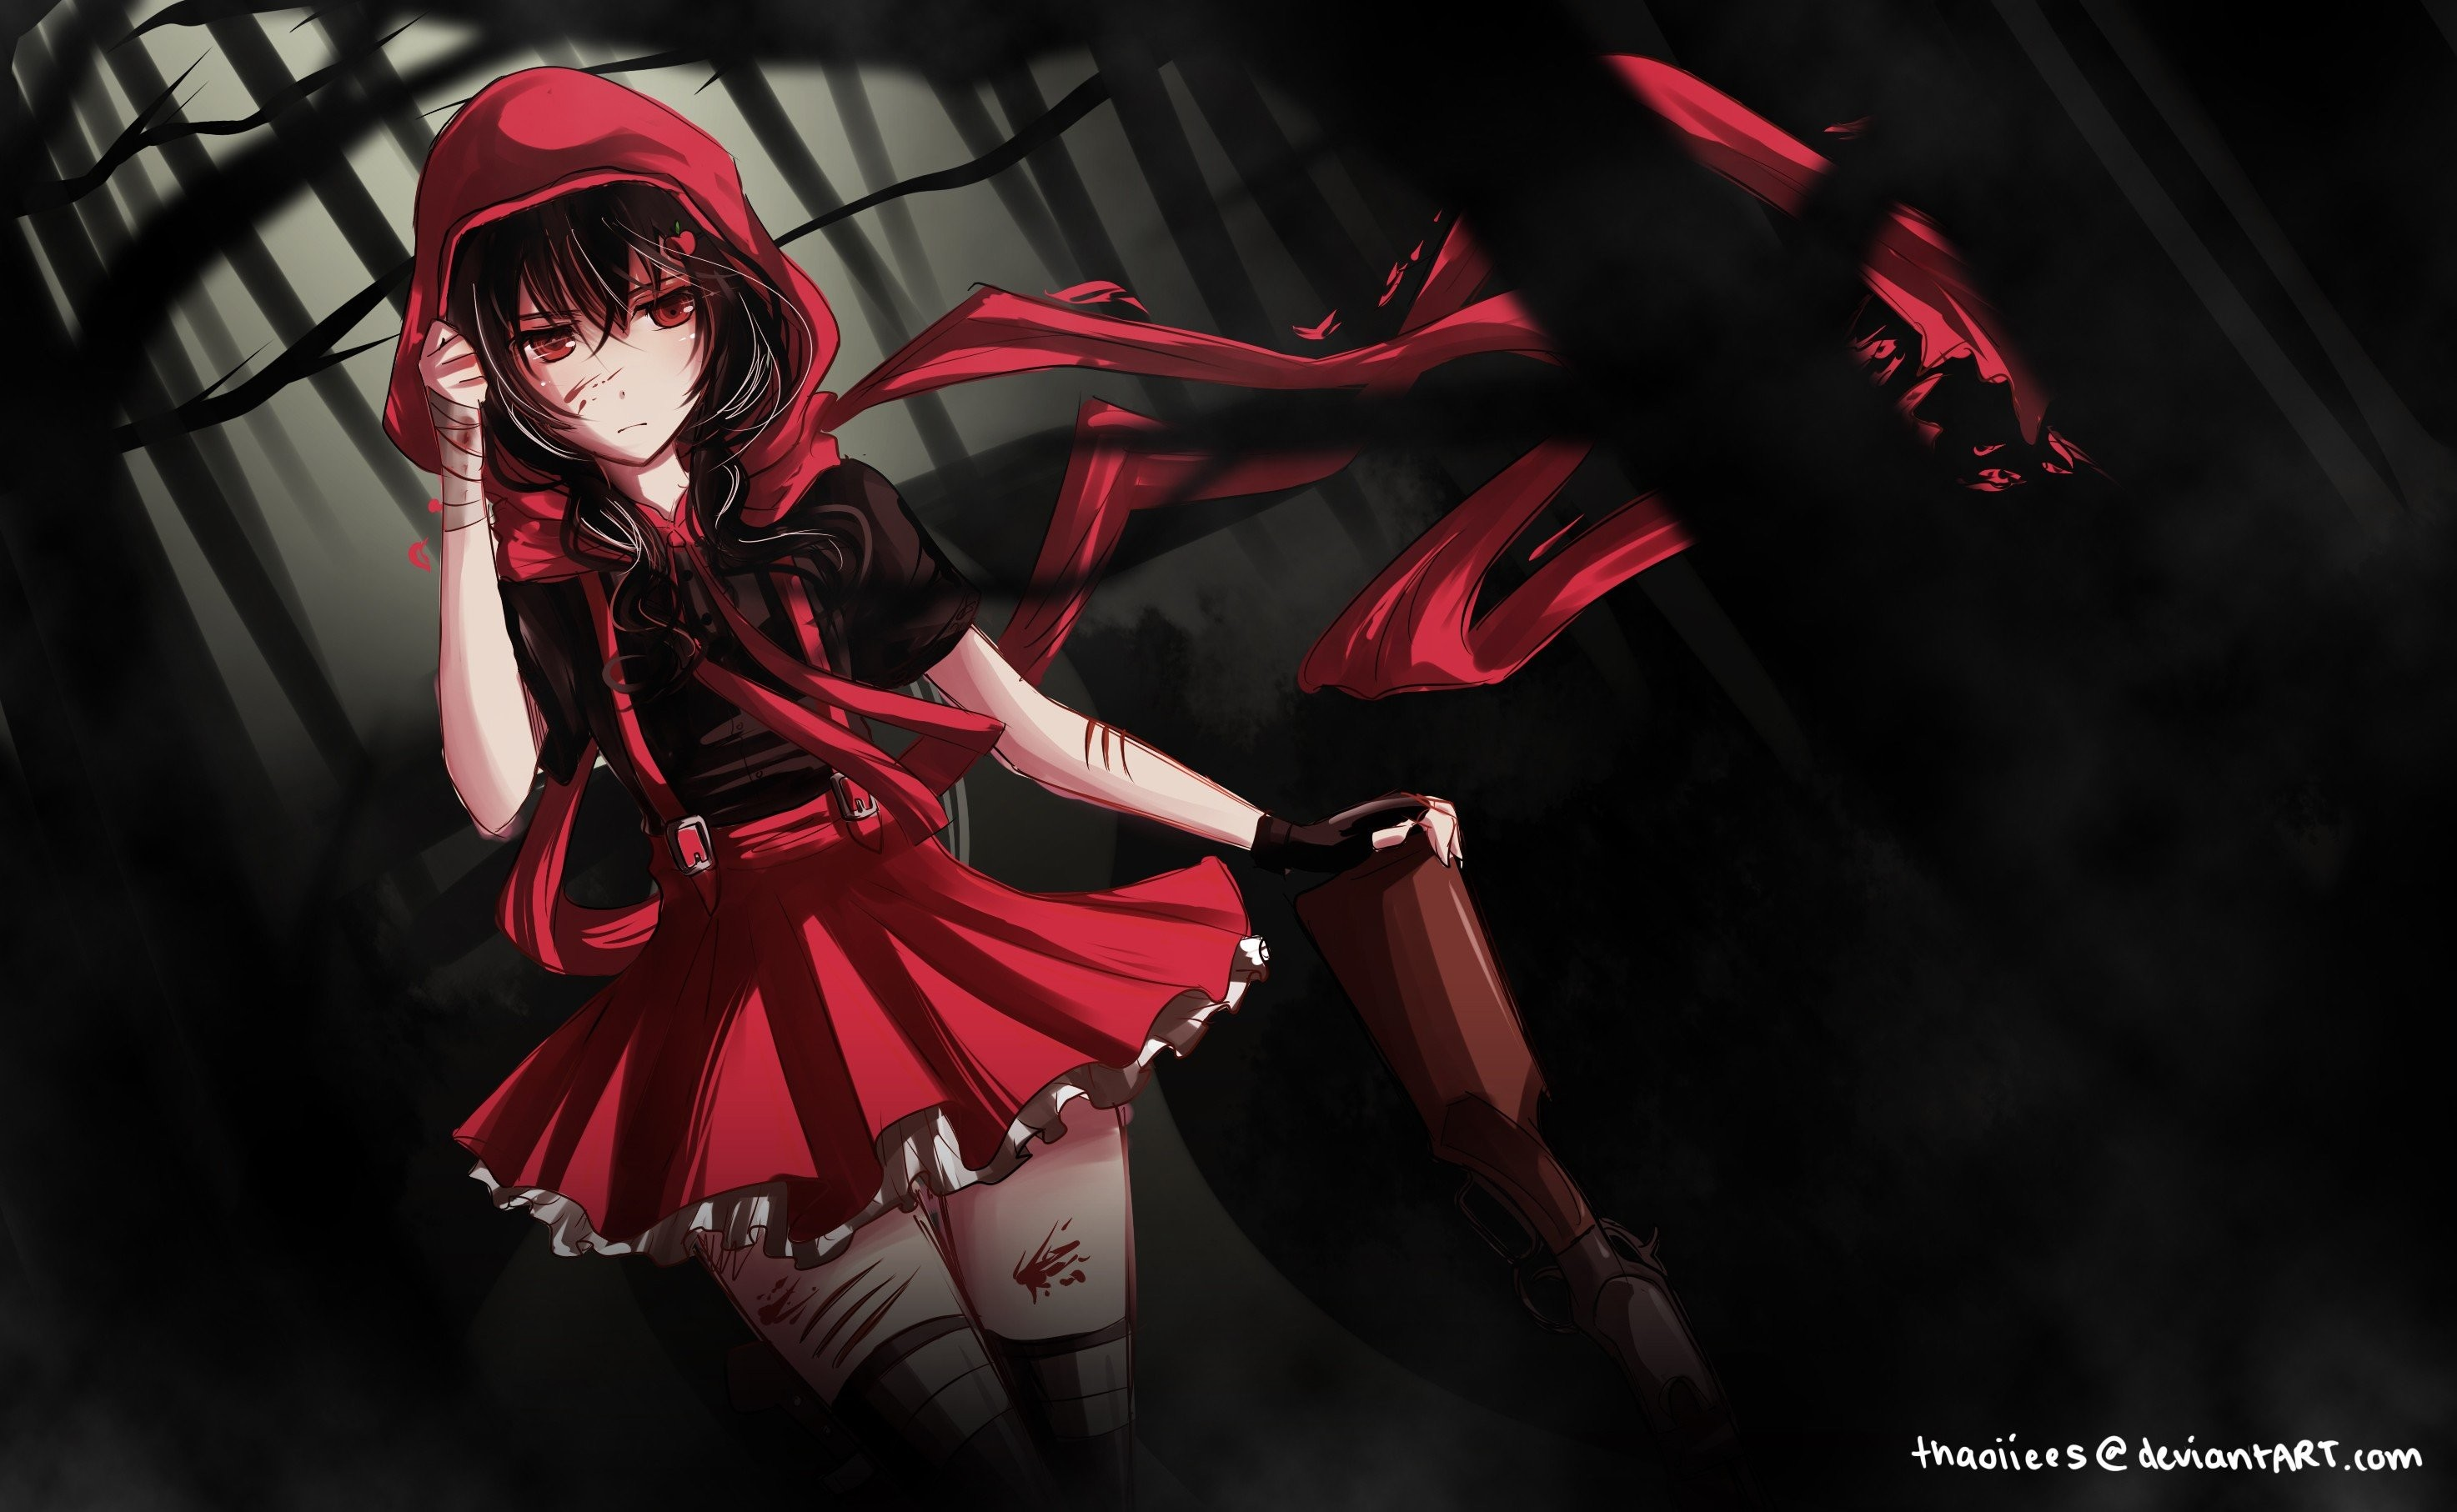 Red and black anime wallpaper 72 images - Red and black anime ...